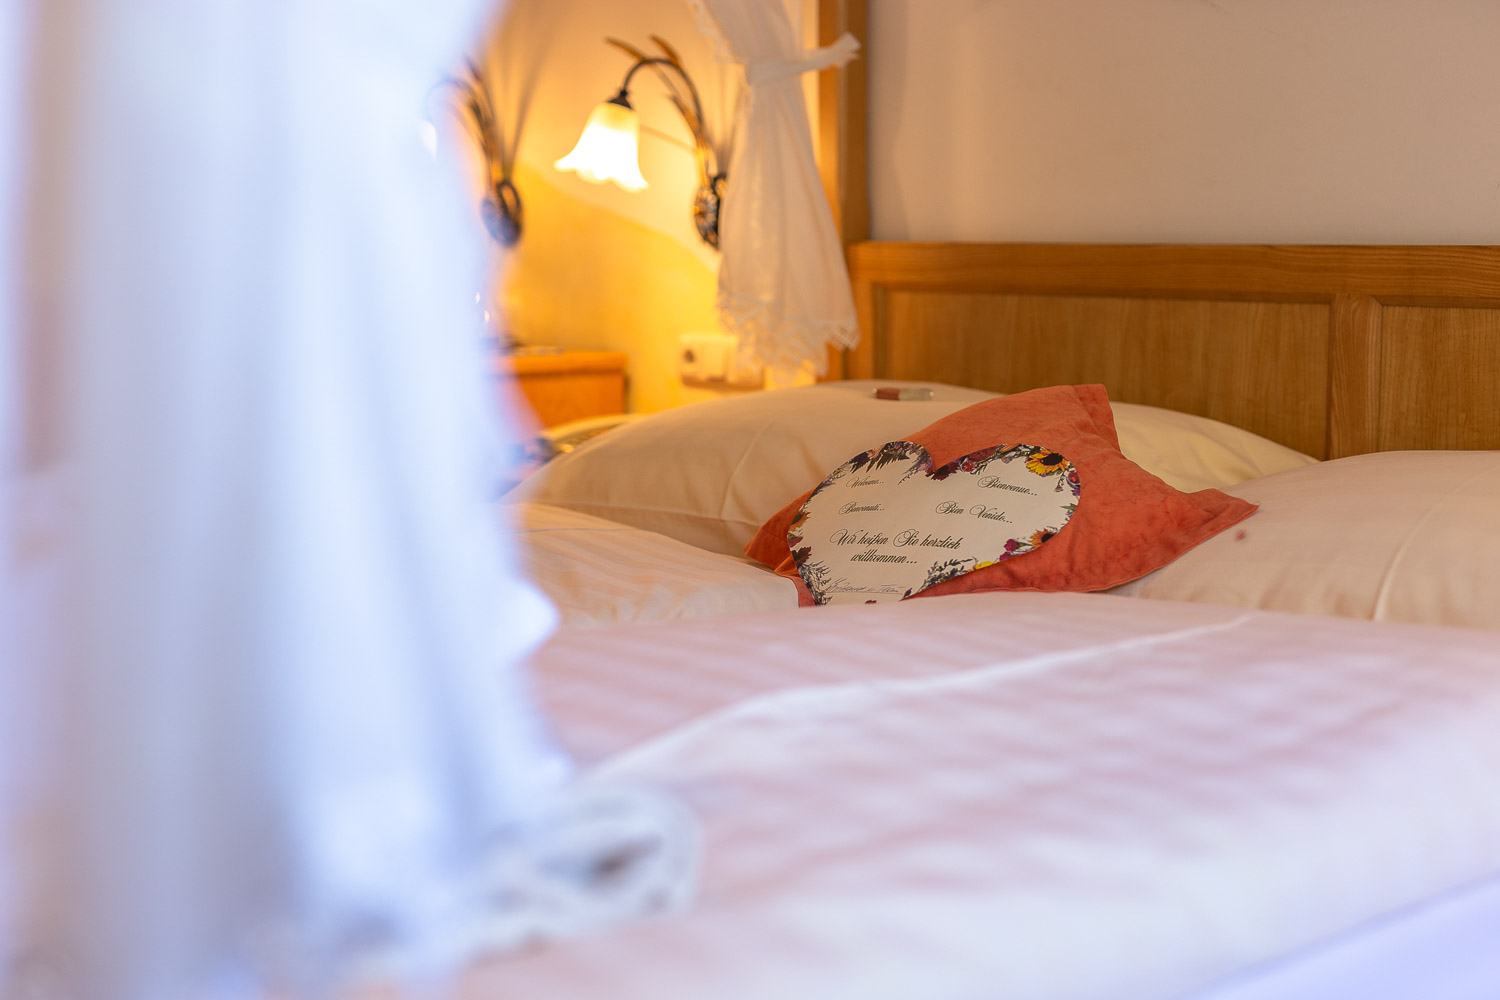 Enjoy our Bed & Breakfast in Göstling-Hochkar